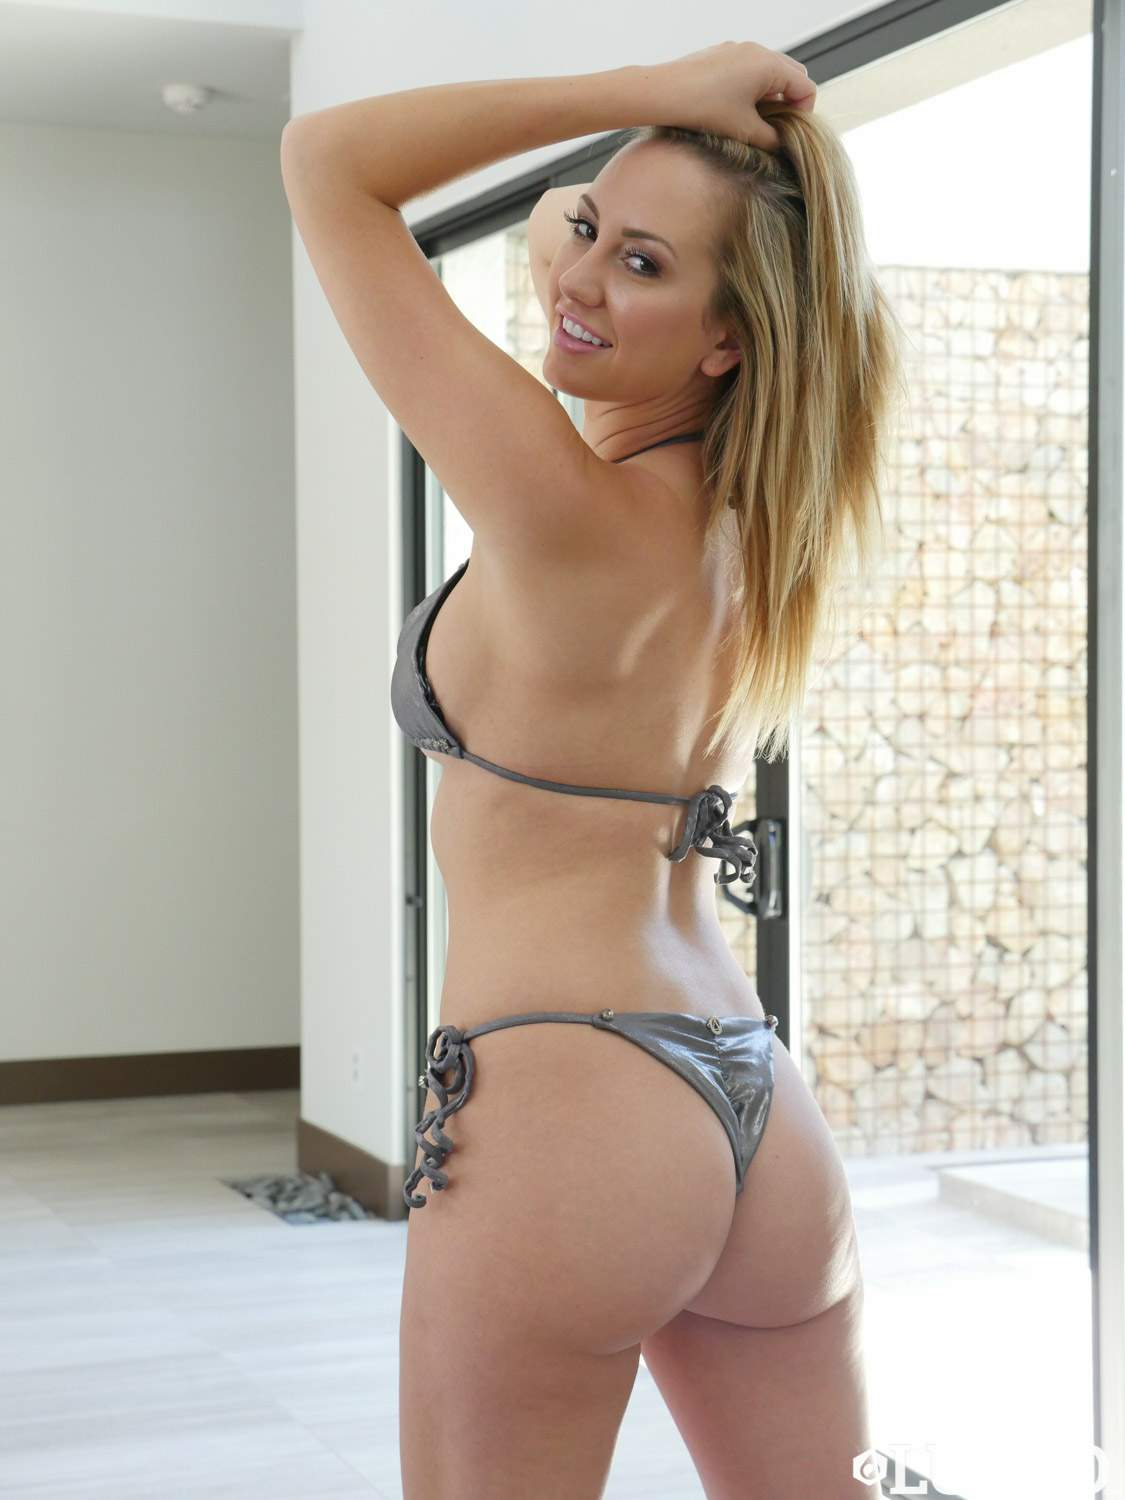 Brett Rossi free pictures and biography at The SexBomb ...